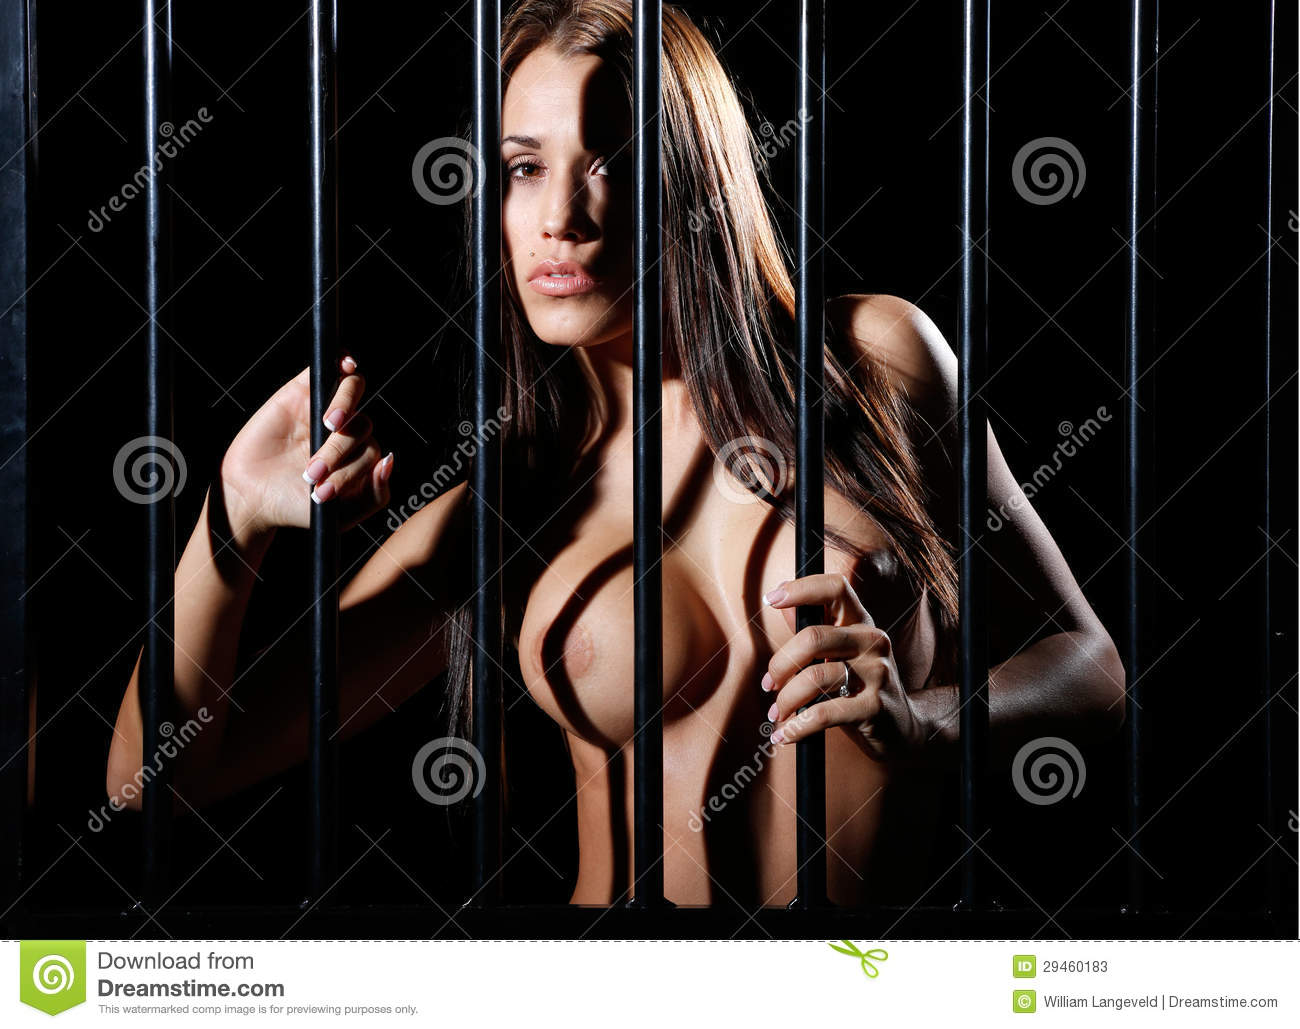 naked in style prison